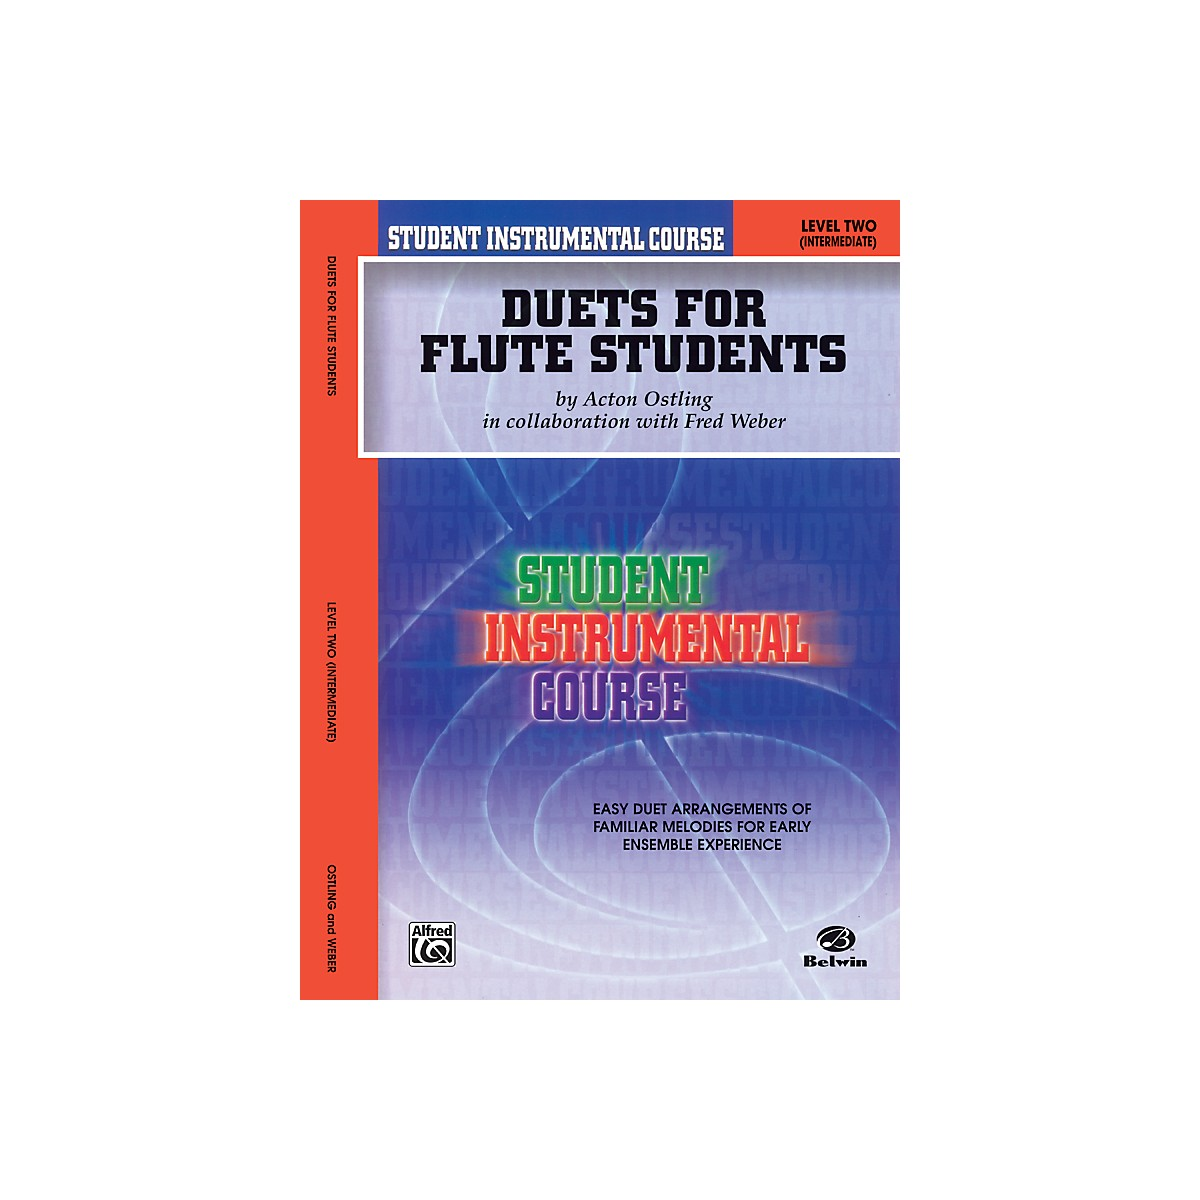 Alfred Student Instrumental Course Duets for Flute Students Level 2 Book